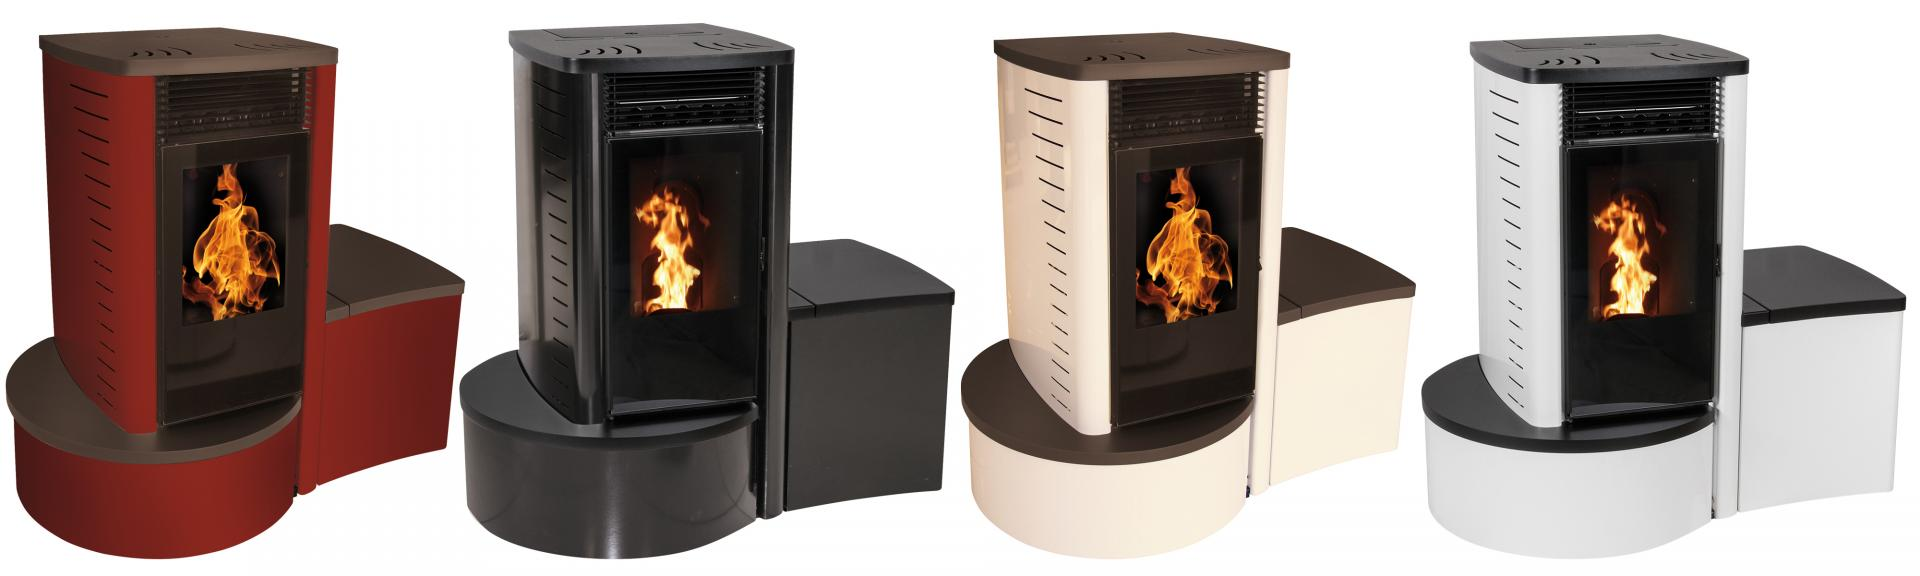 Couleur mode le stove industry pgvd